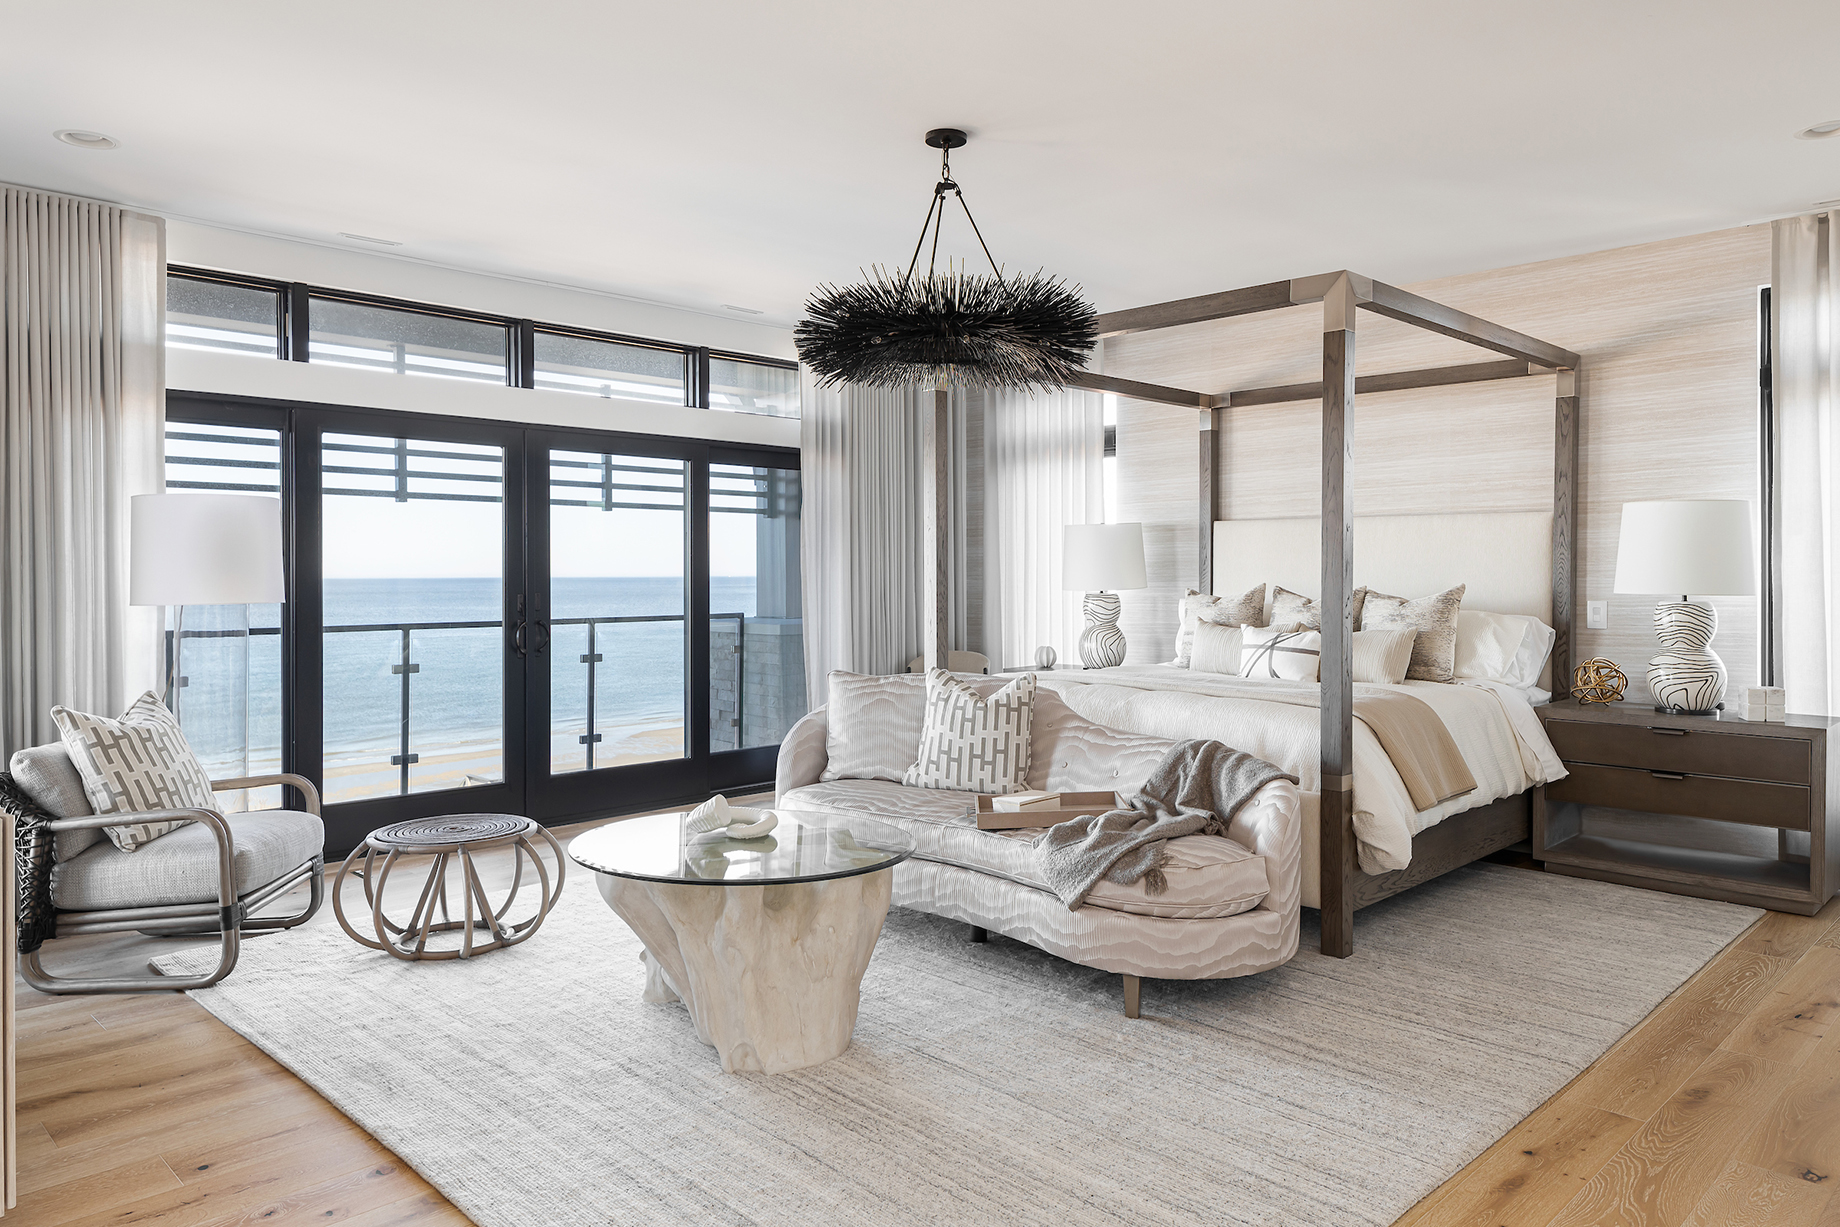 Bedroom with oceanside view in Virginia Beach home designed by Kenneth Byrd.